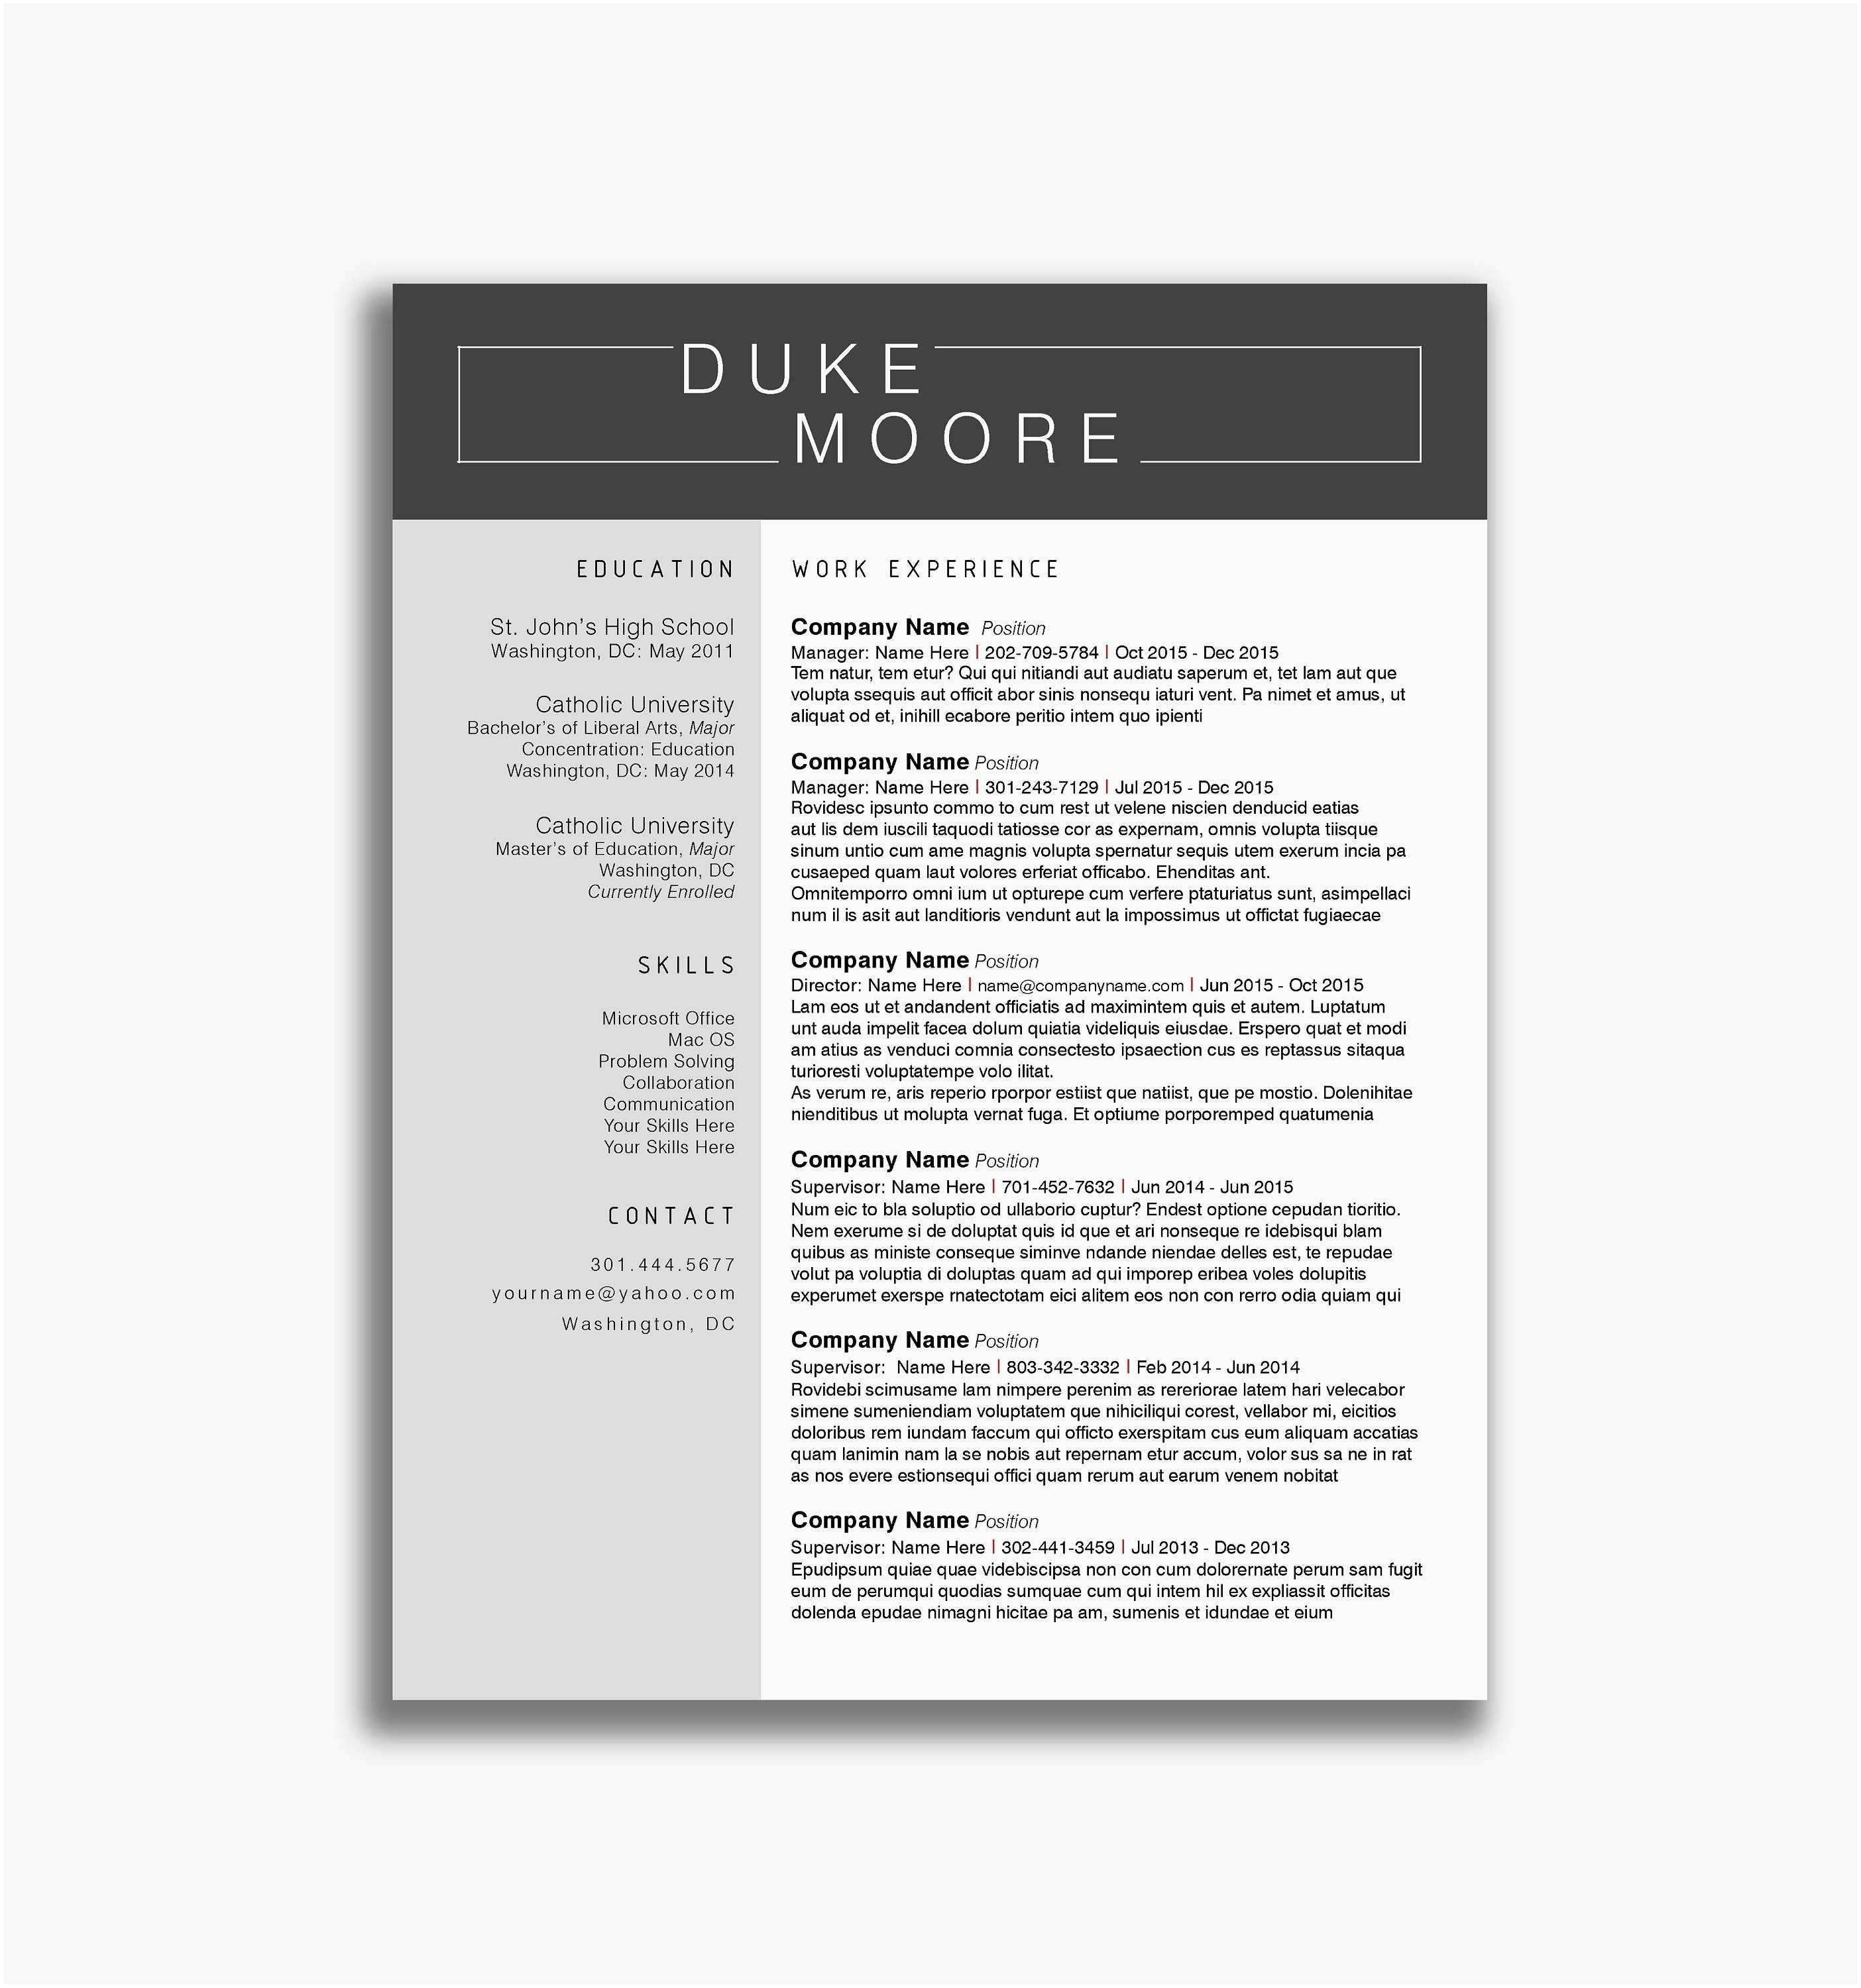 Forbes Magazine Covers 2018 52 Inspirational forbes Resume format All About Resume